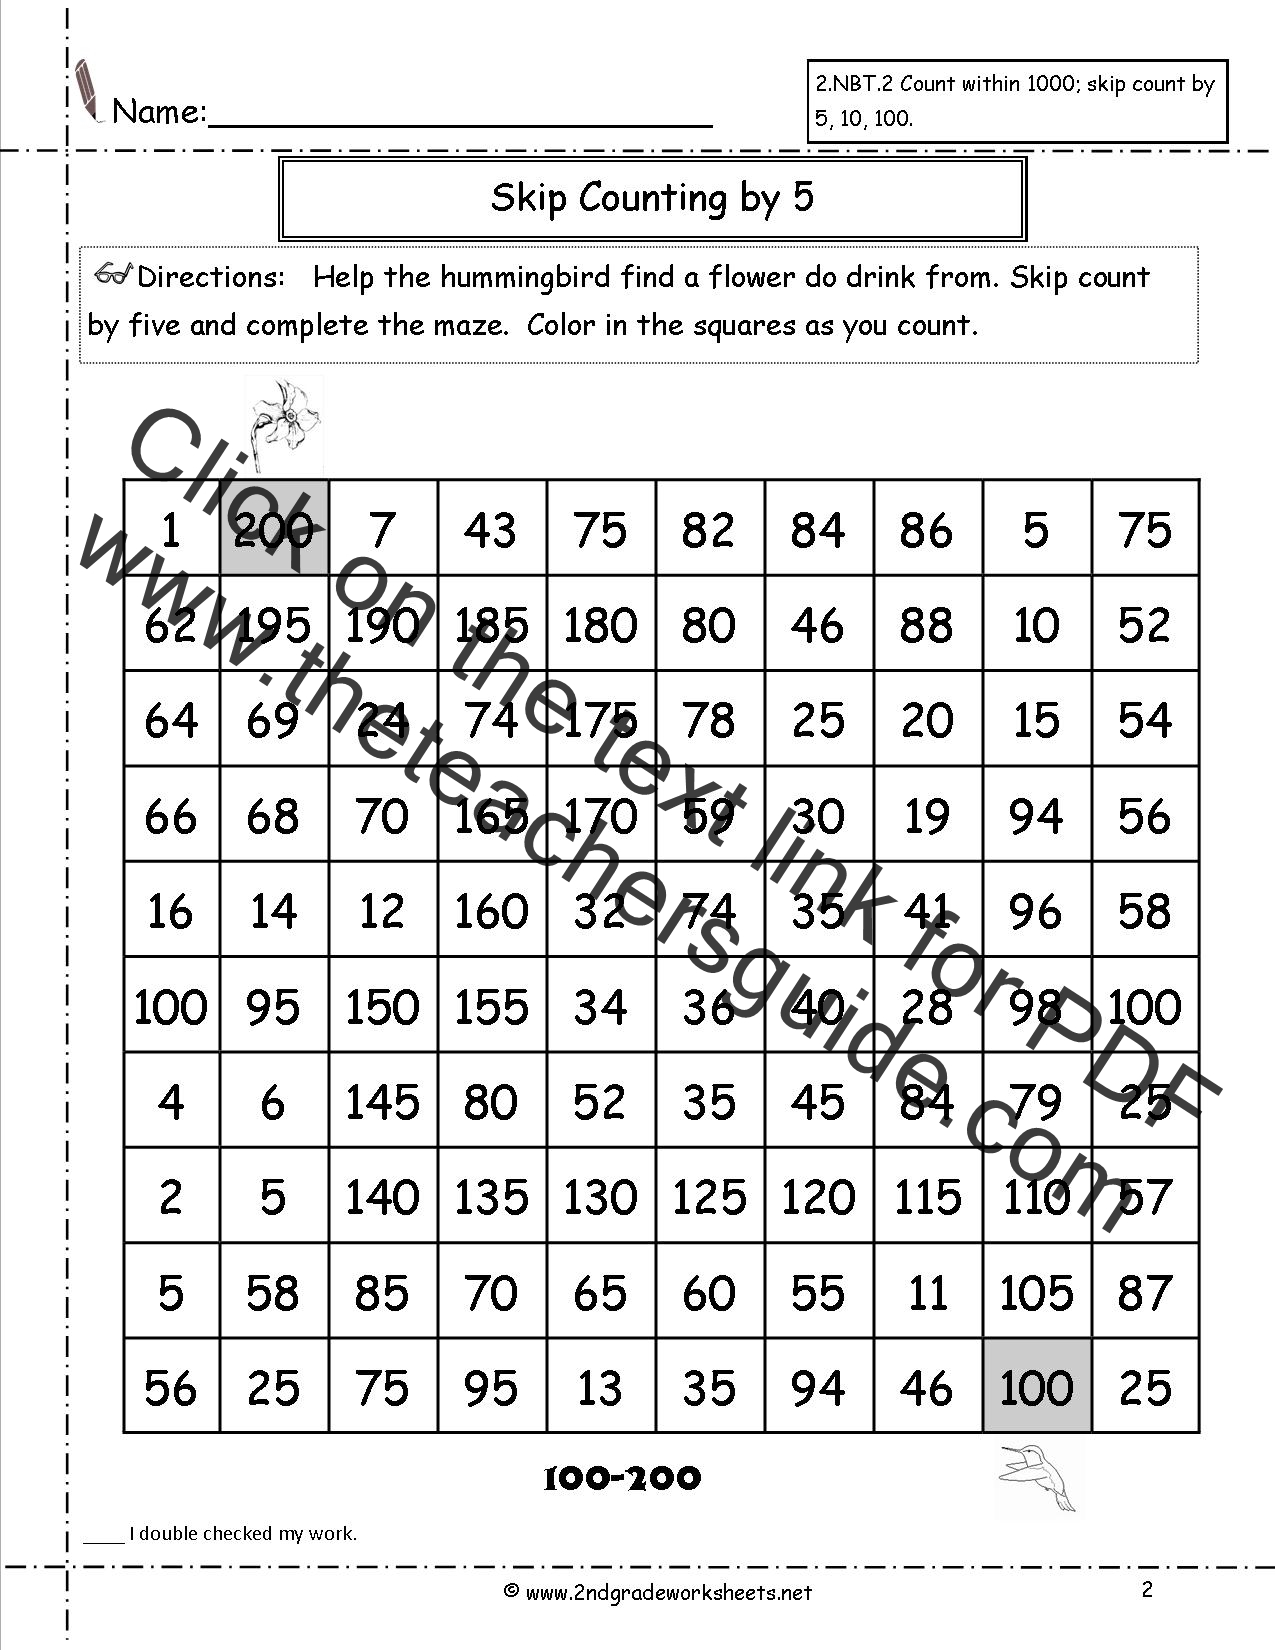 Free Skip Counting Worksheets – Counting by 5 Worksheets